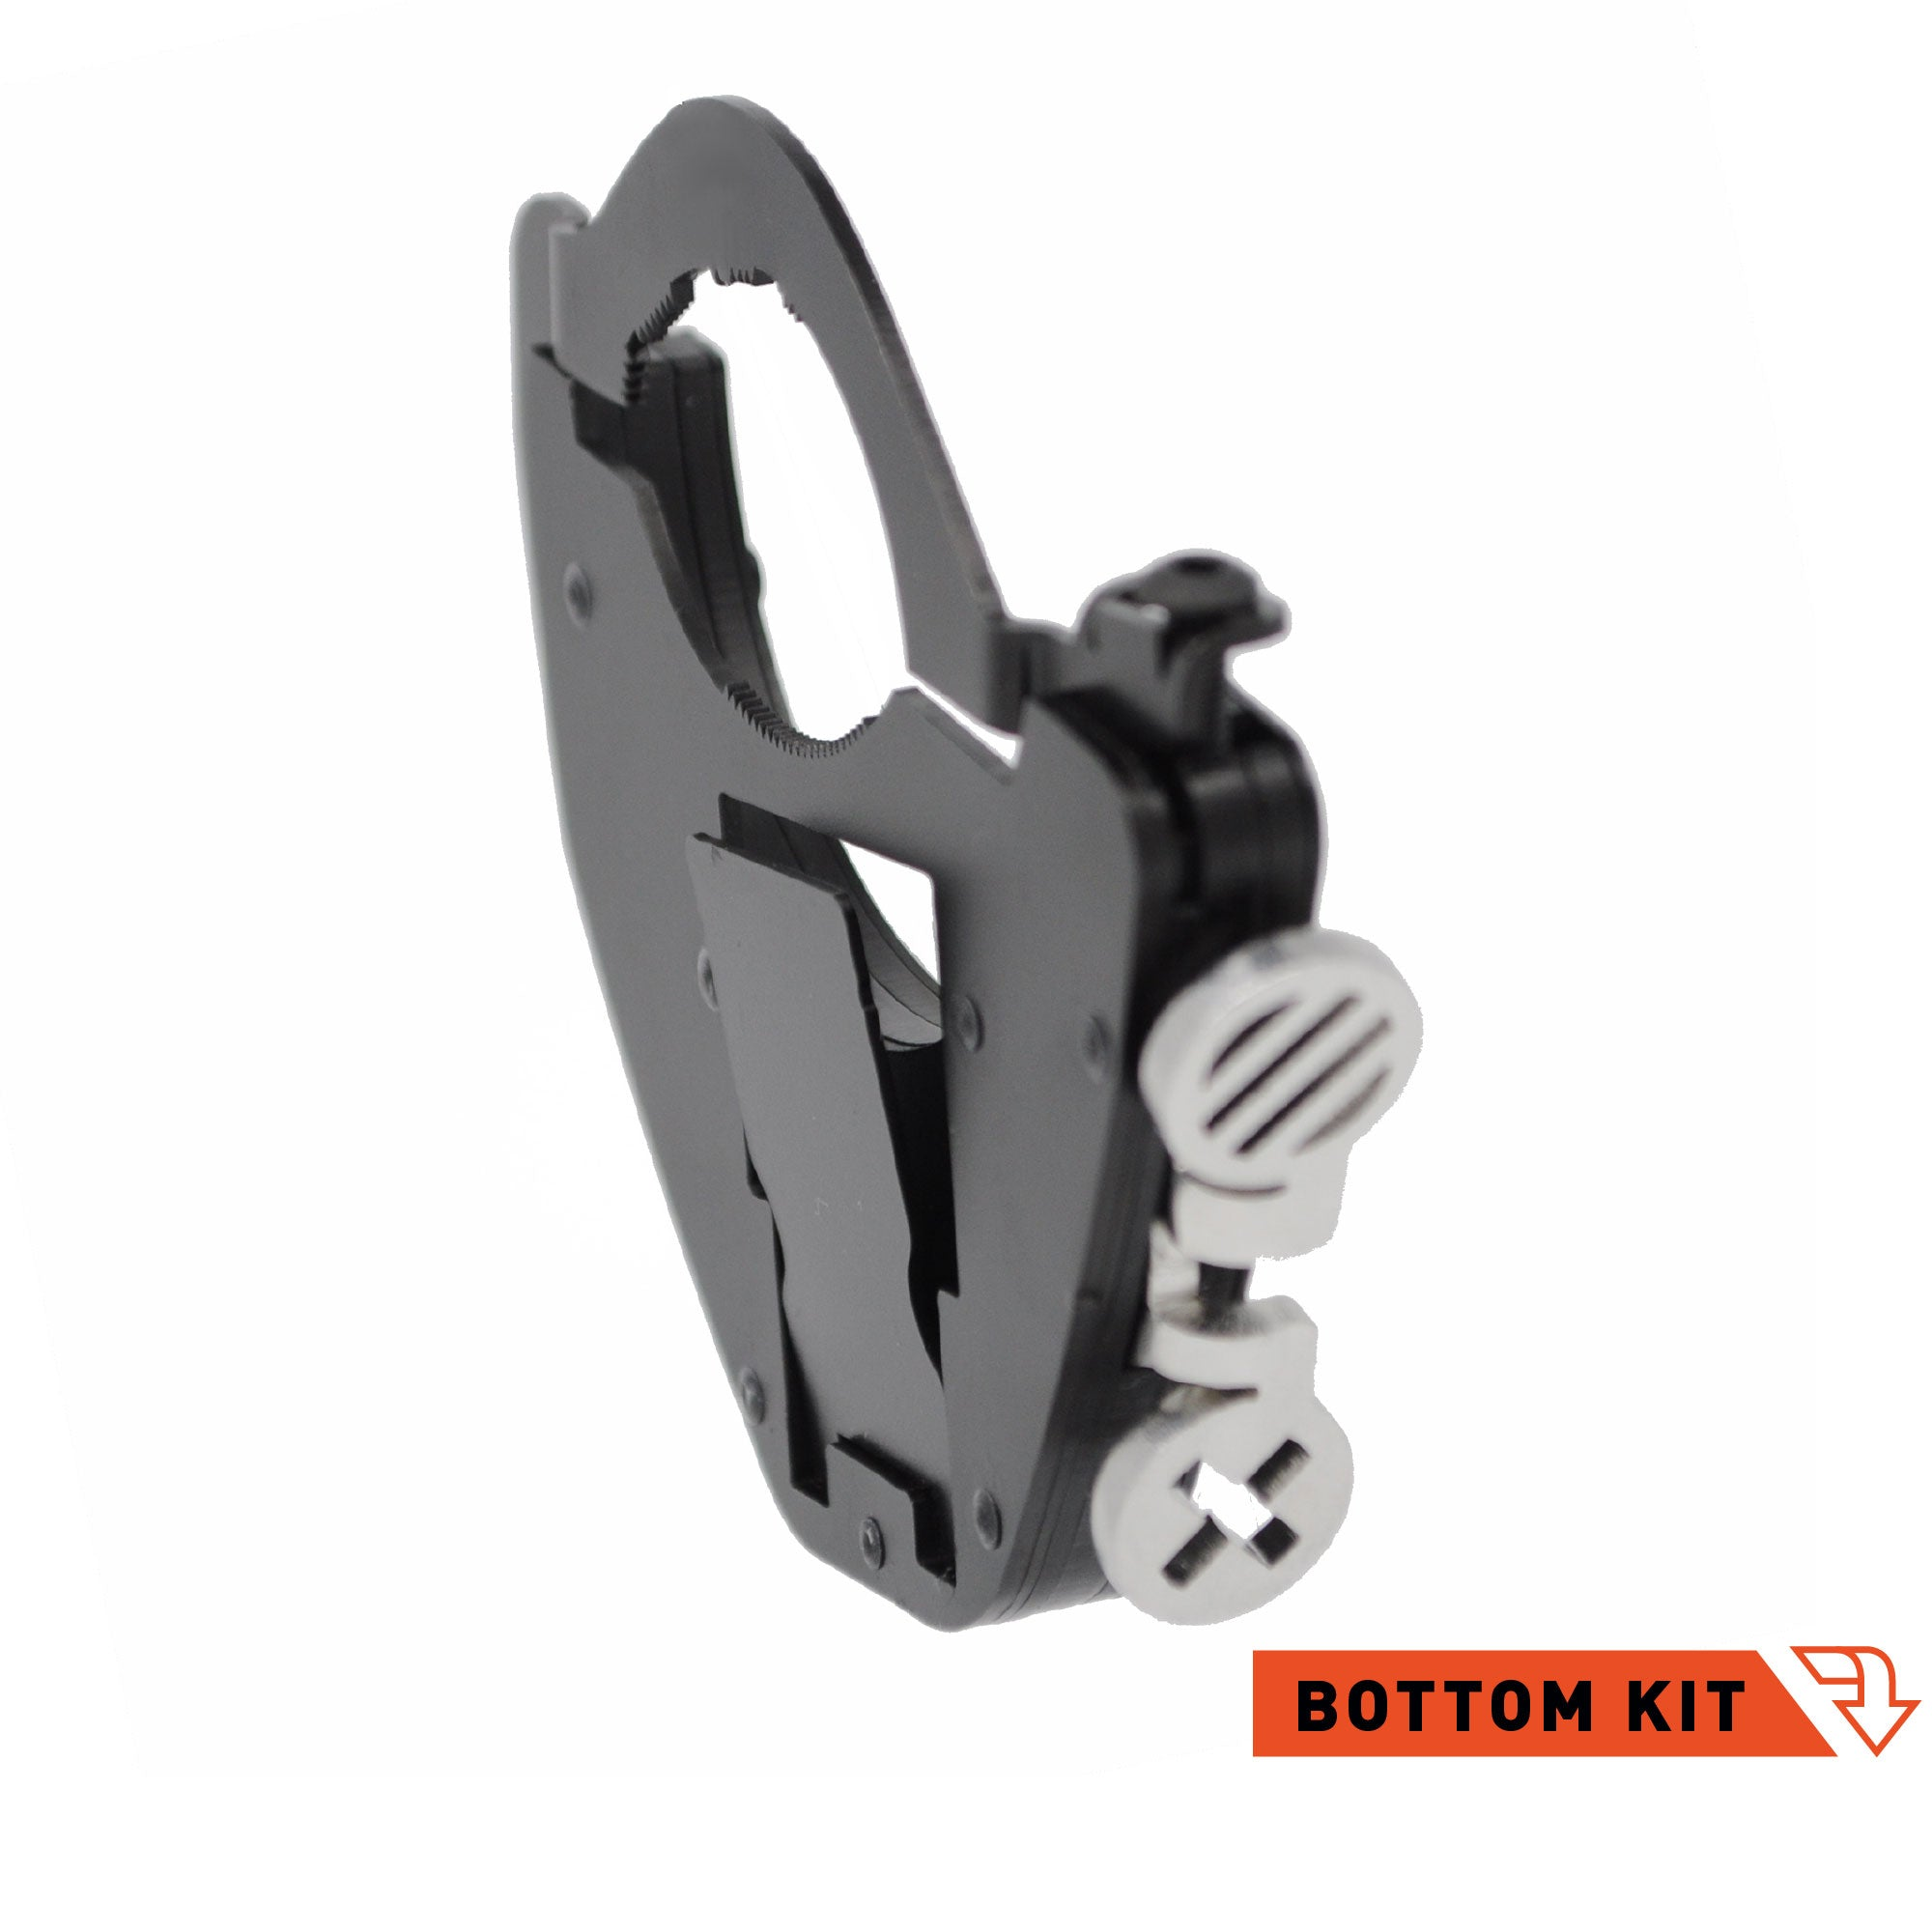 Harley Davidson Motorcycles - ATLAS Throttle Lock